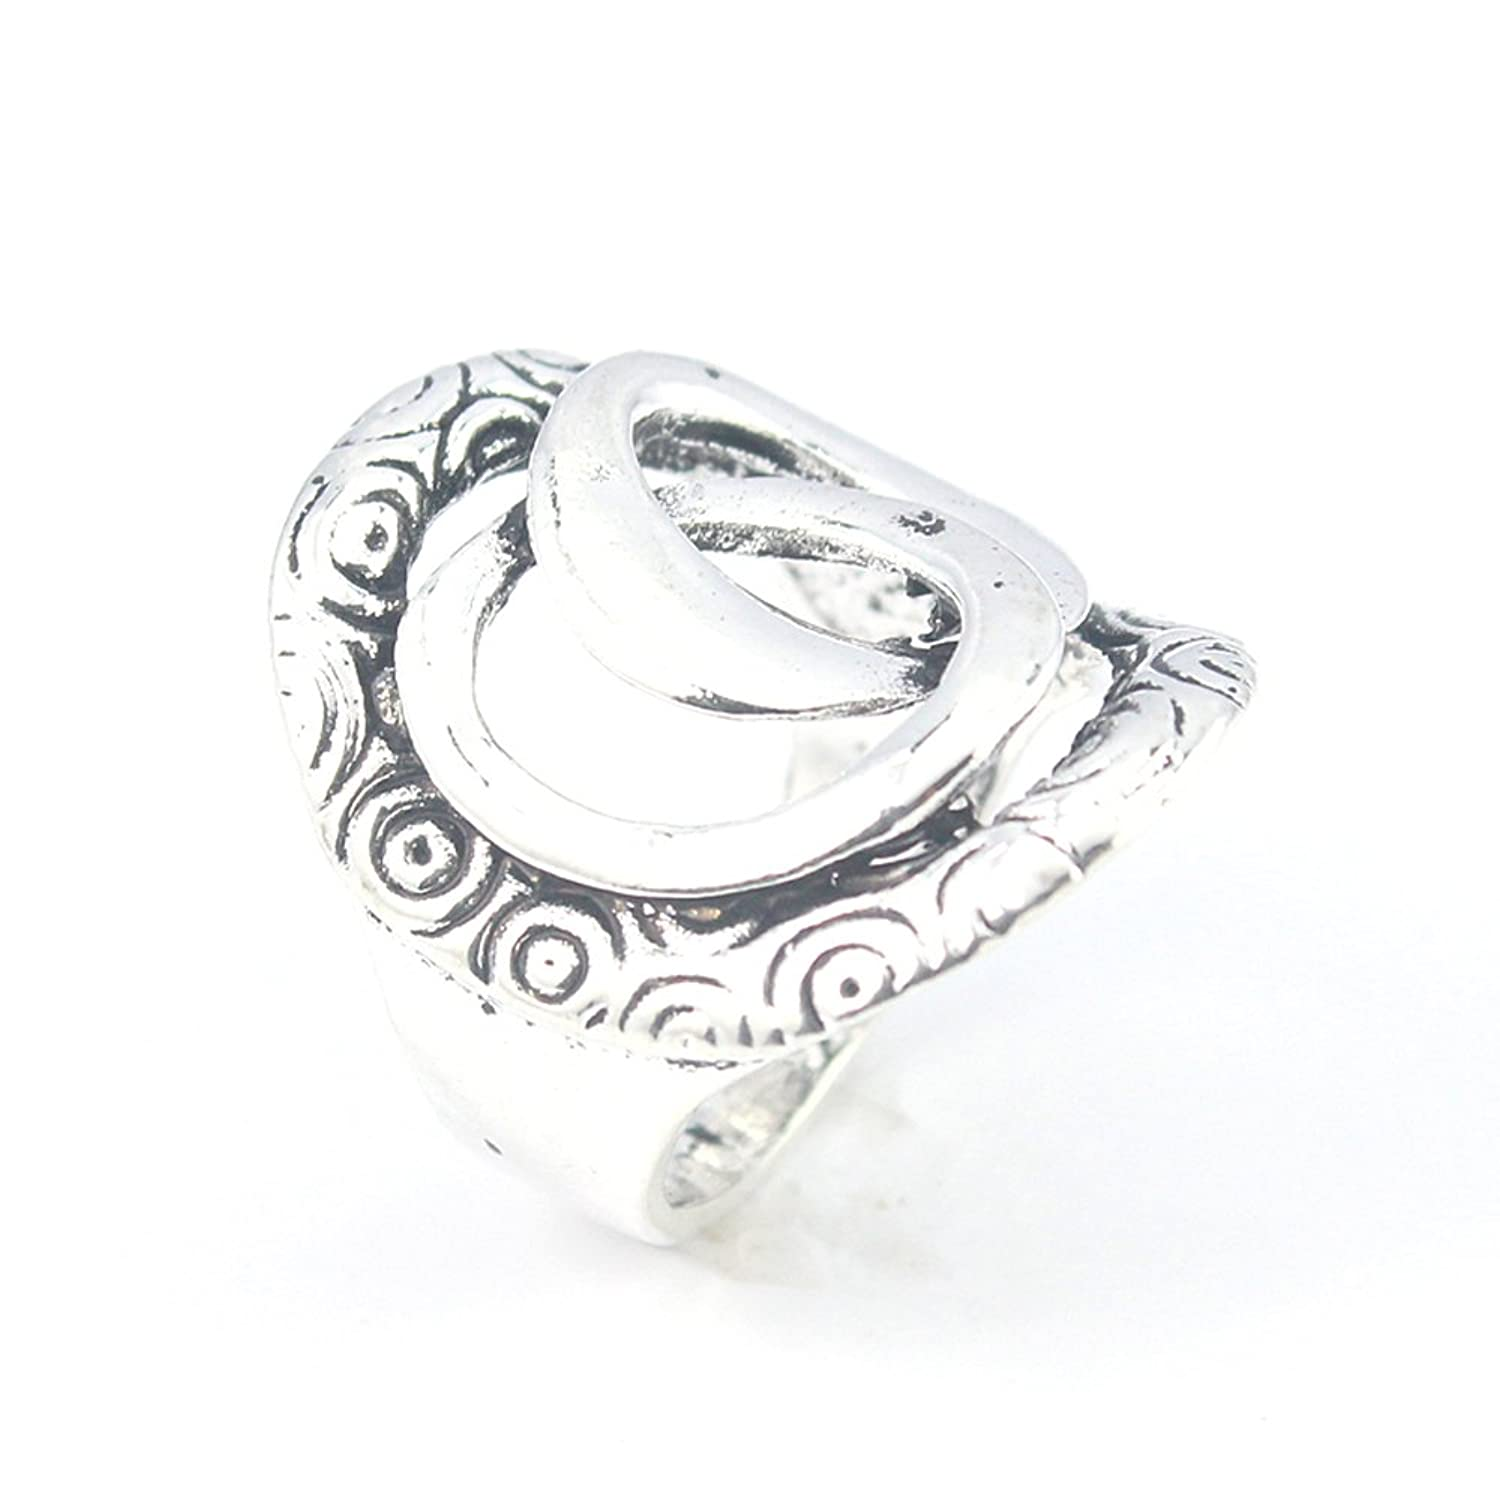 PLAIN FASHION JEWELRY .925 SILVER PLATED RING 8 S23625